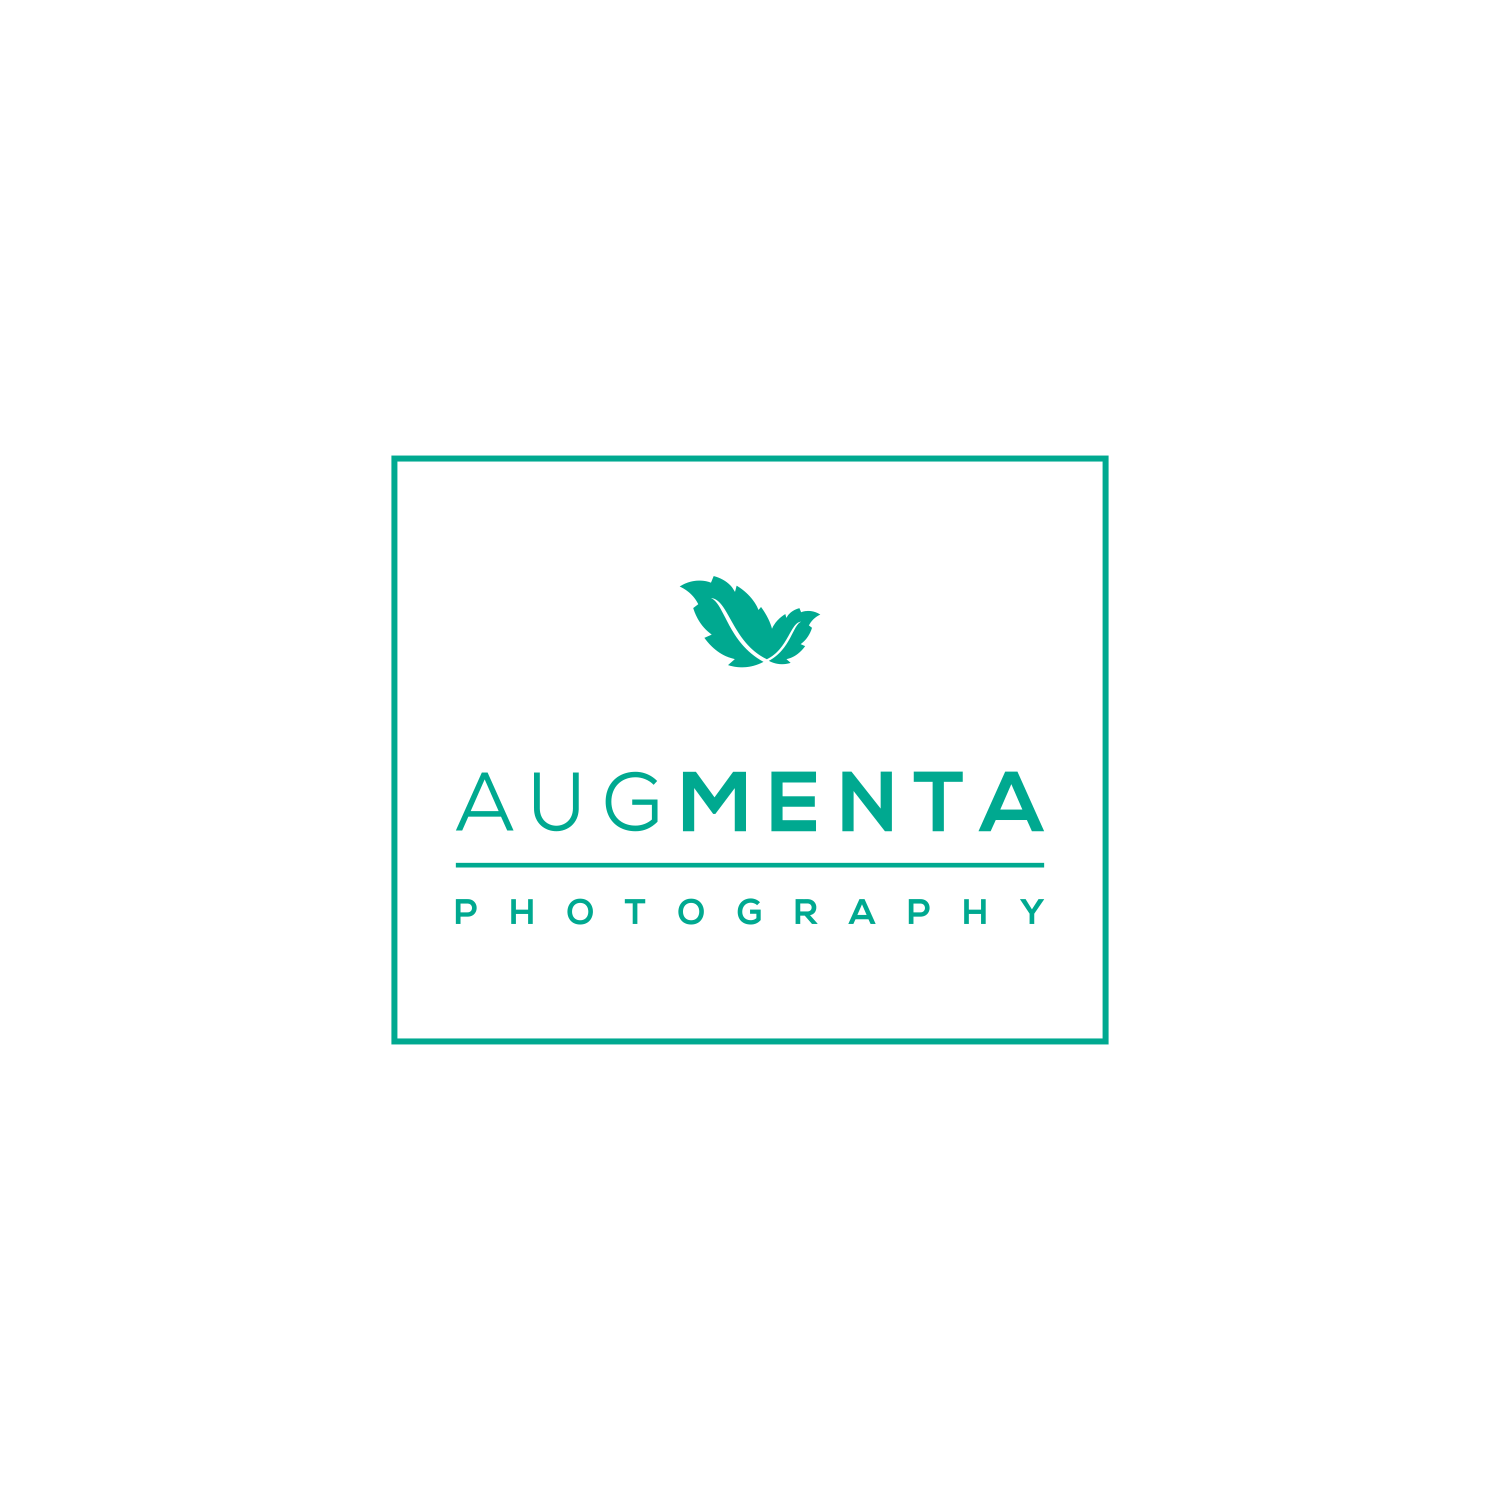 Augmenta Photography floor plan in Canberra